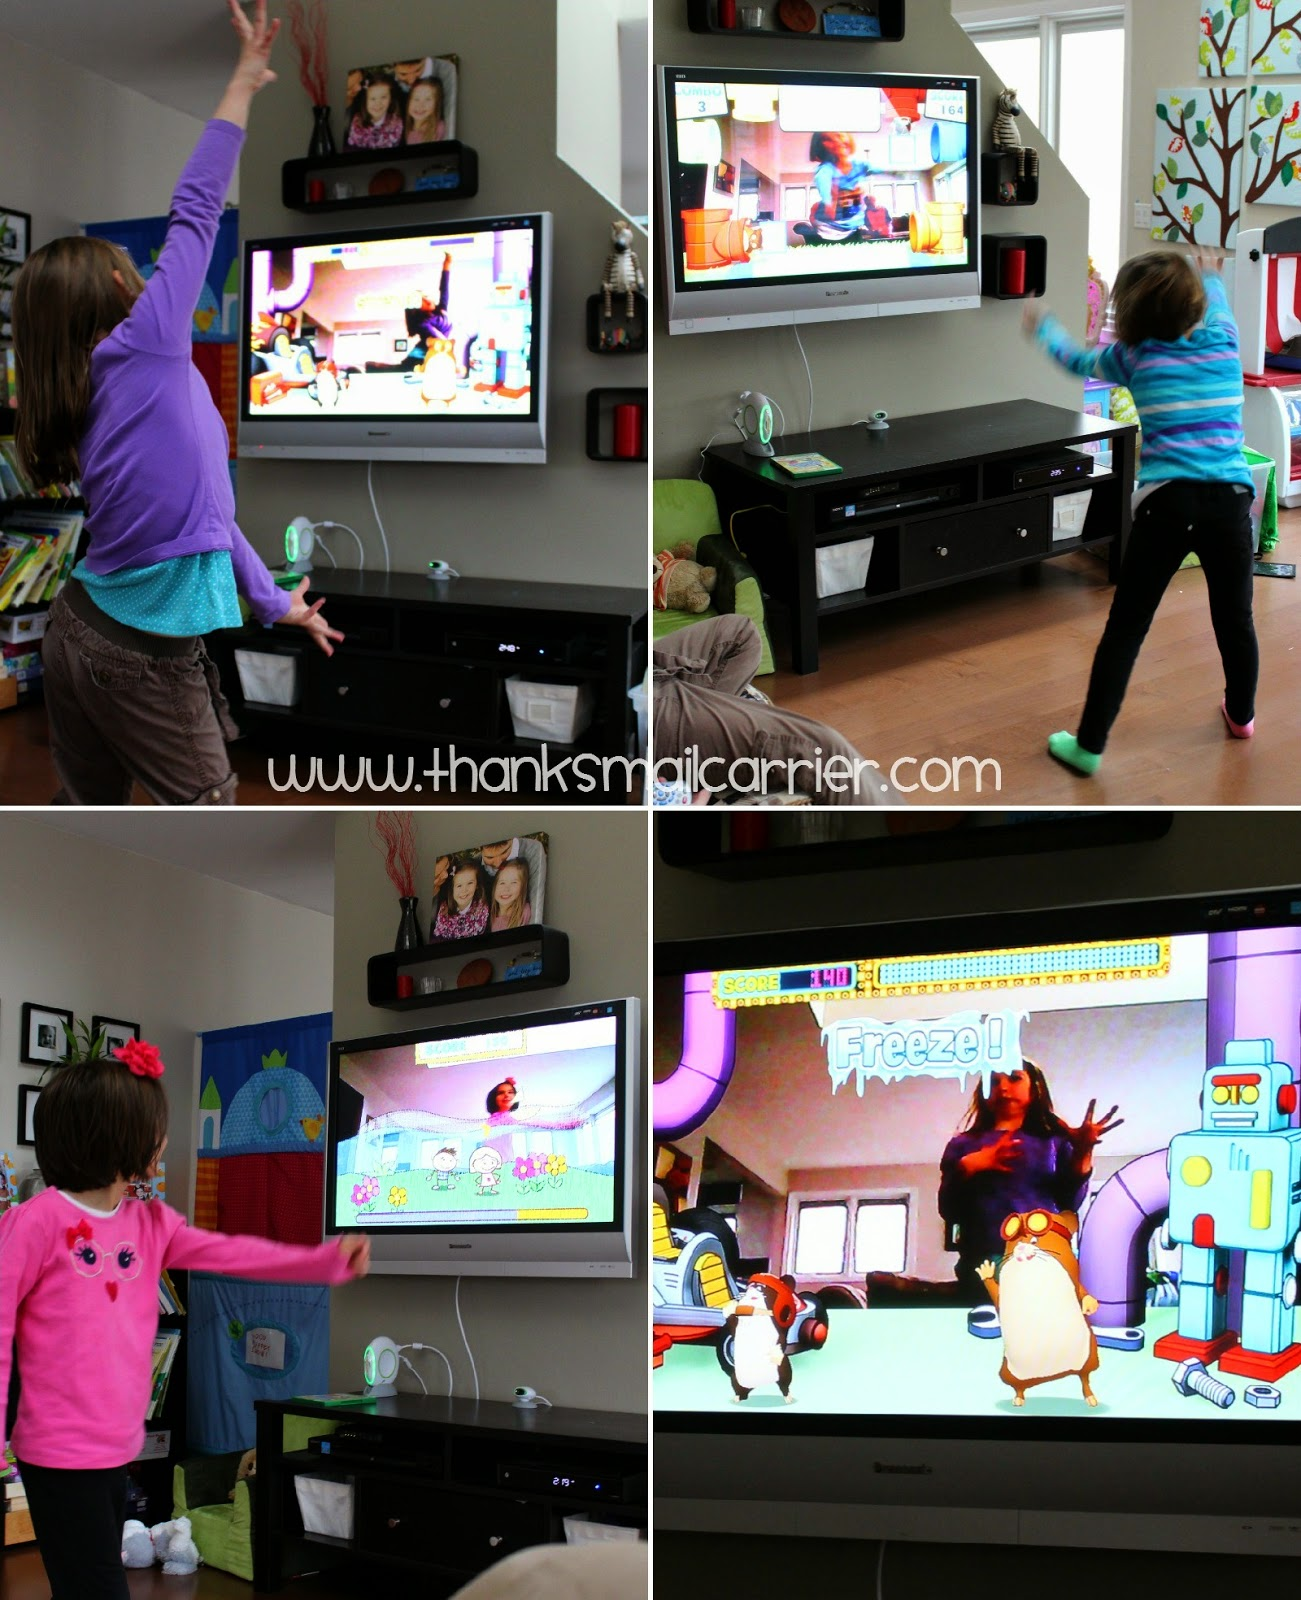 LeapTV Dance & Learn